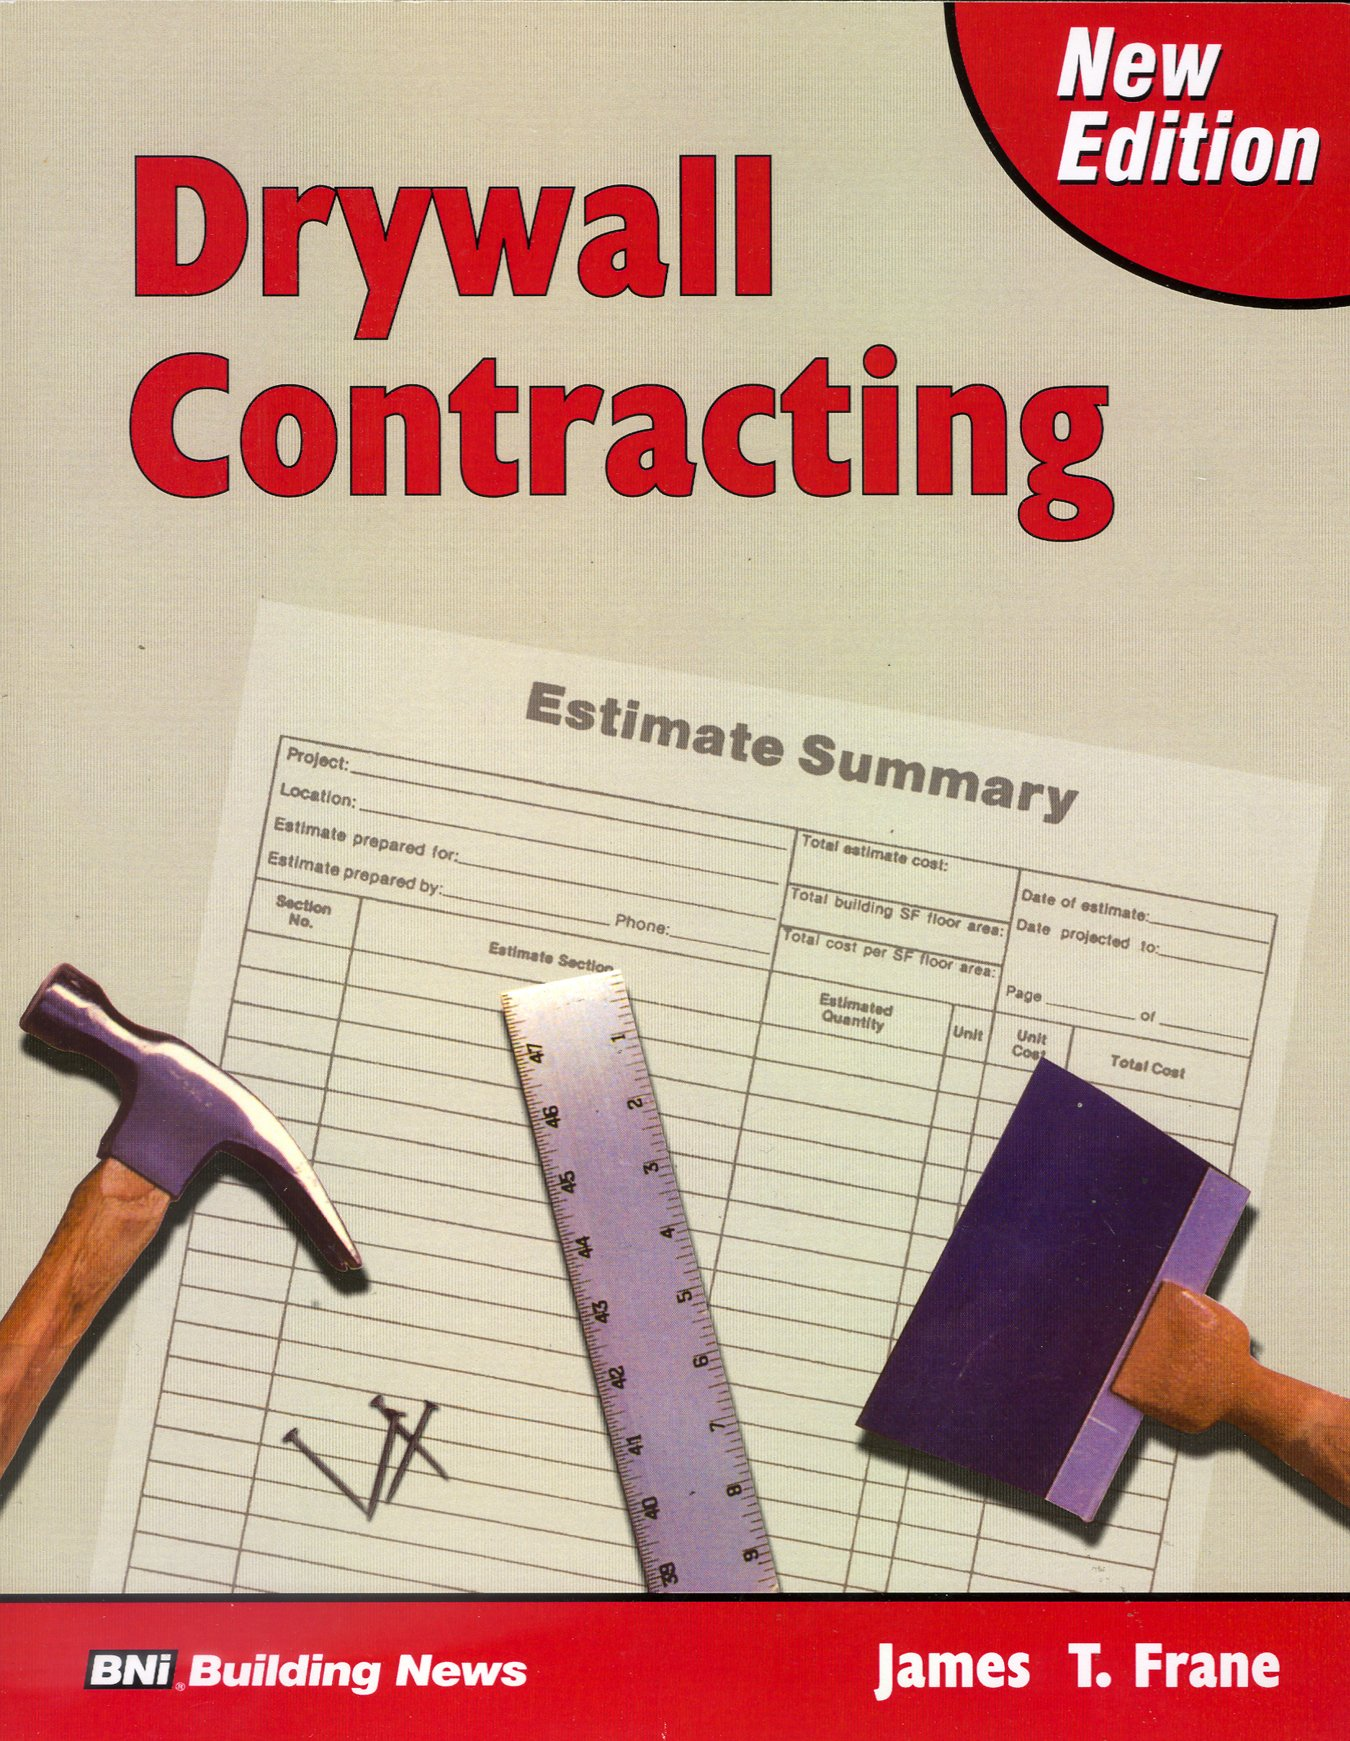 Drywall Contracting